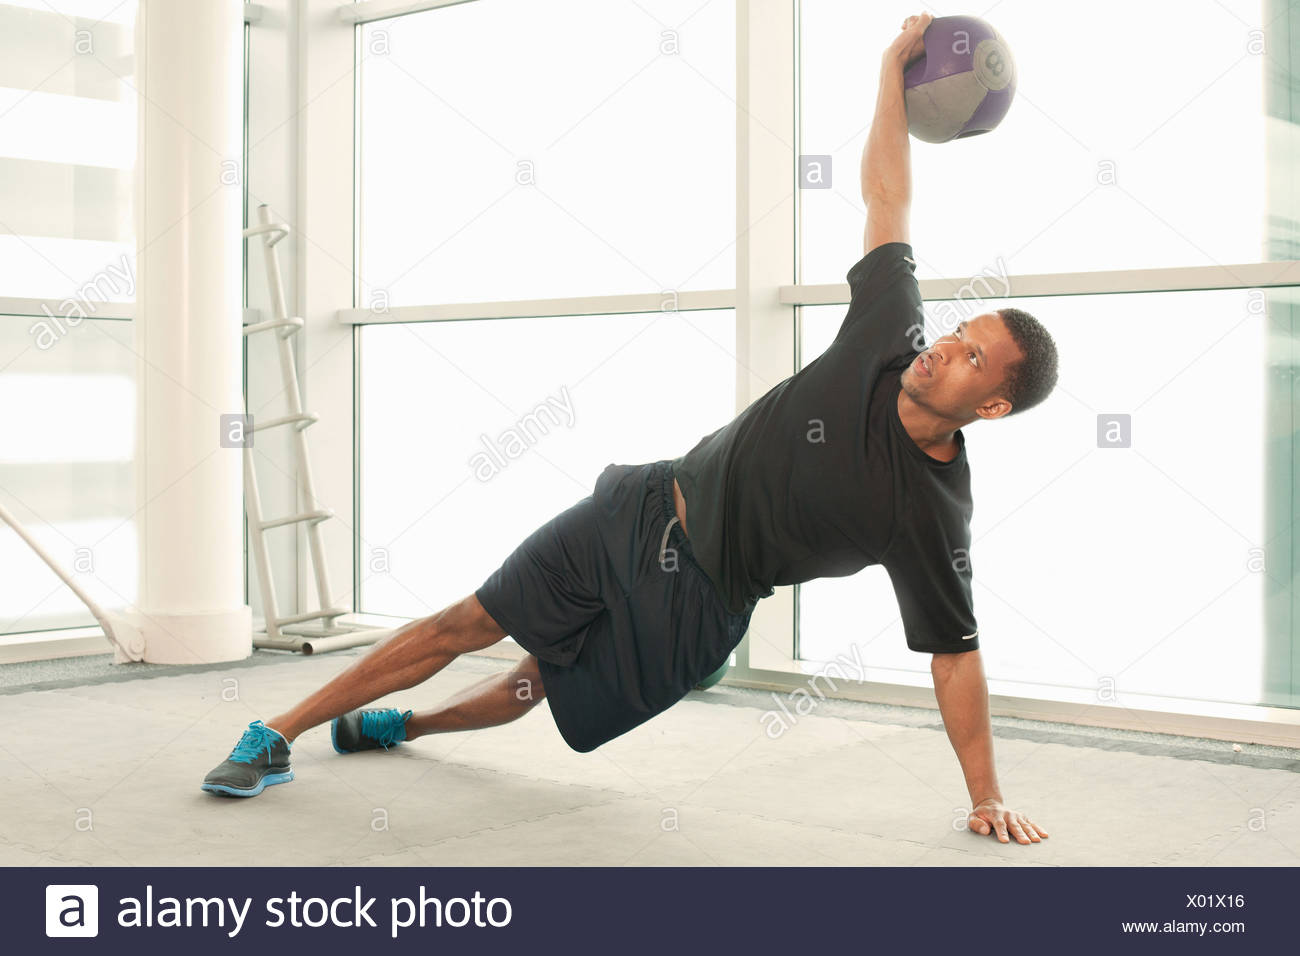 Man stretching using exercise ball - Stock Image